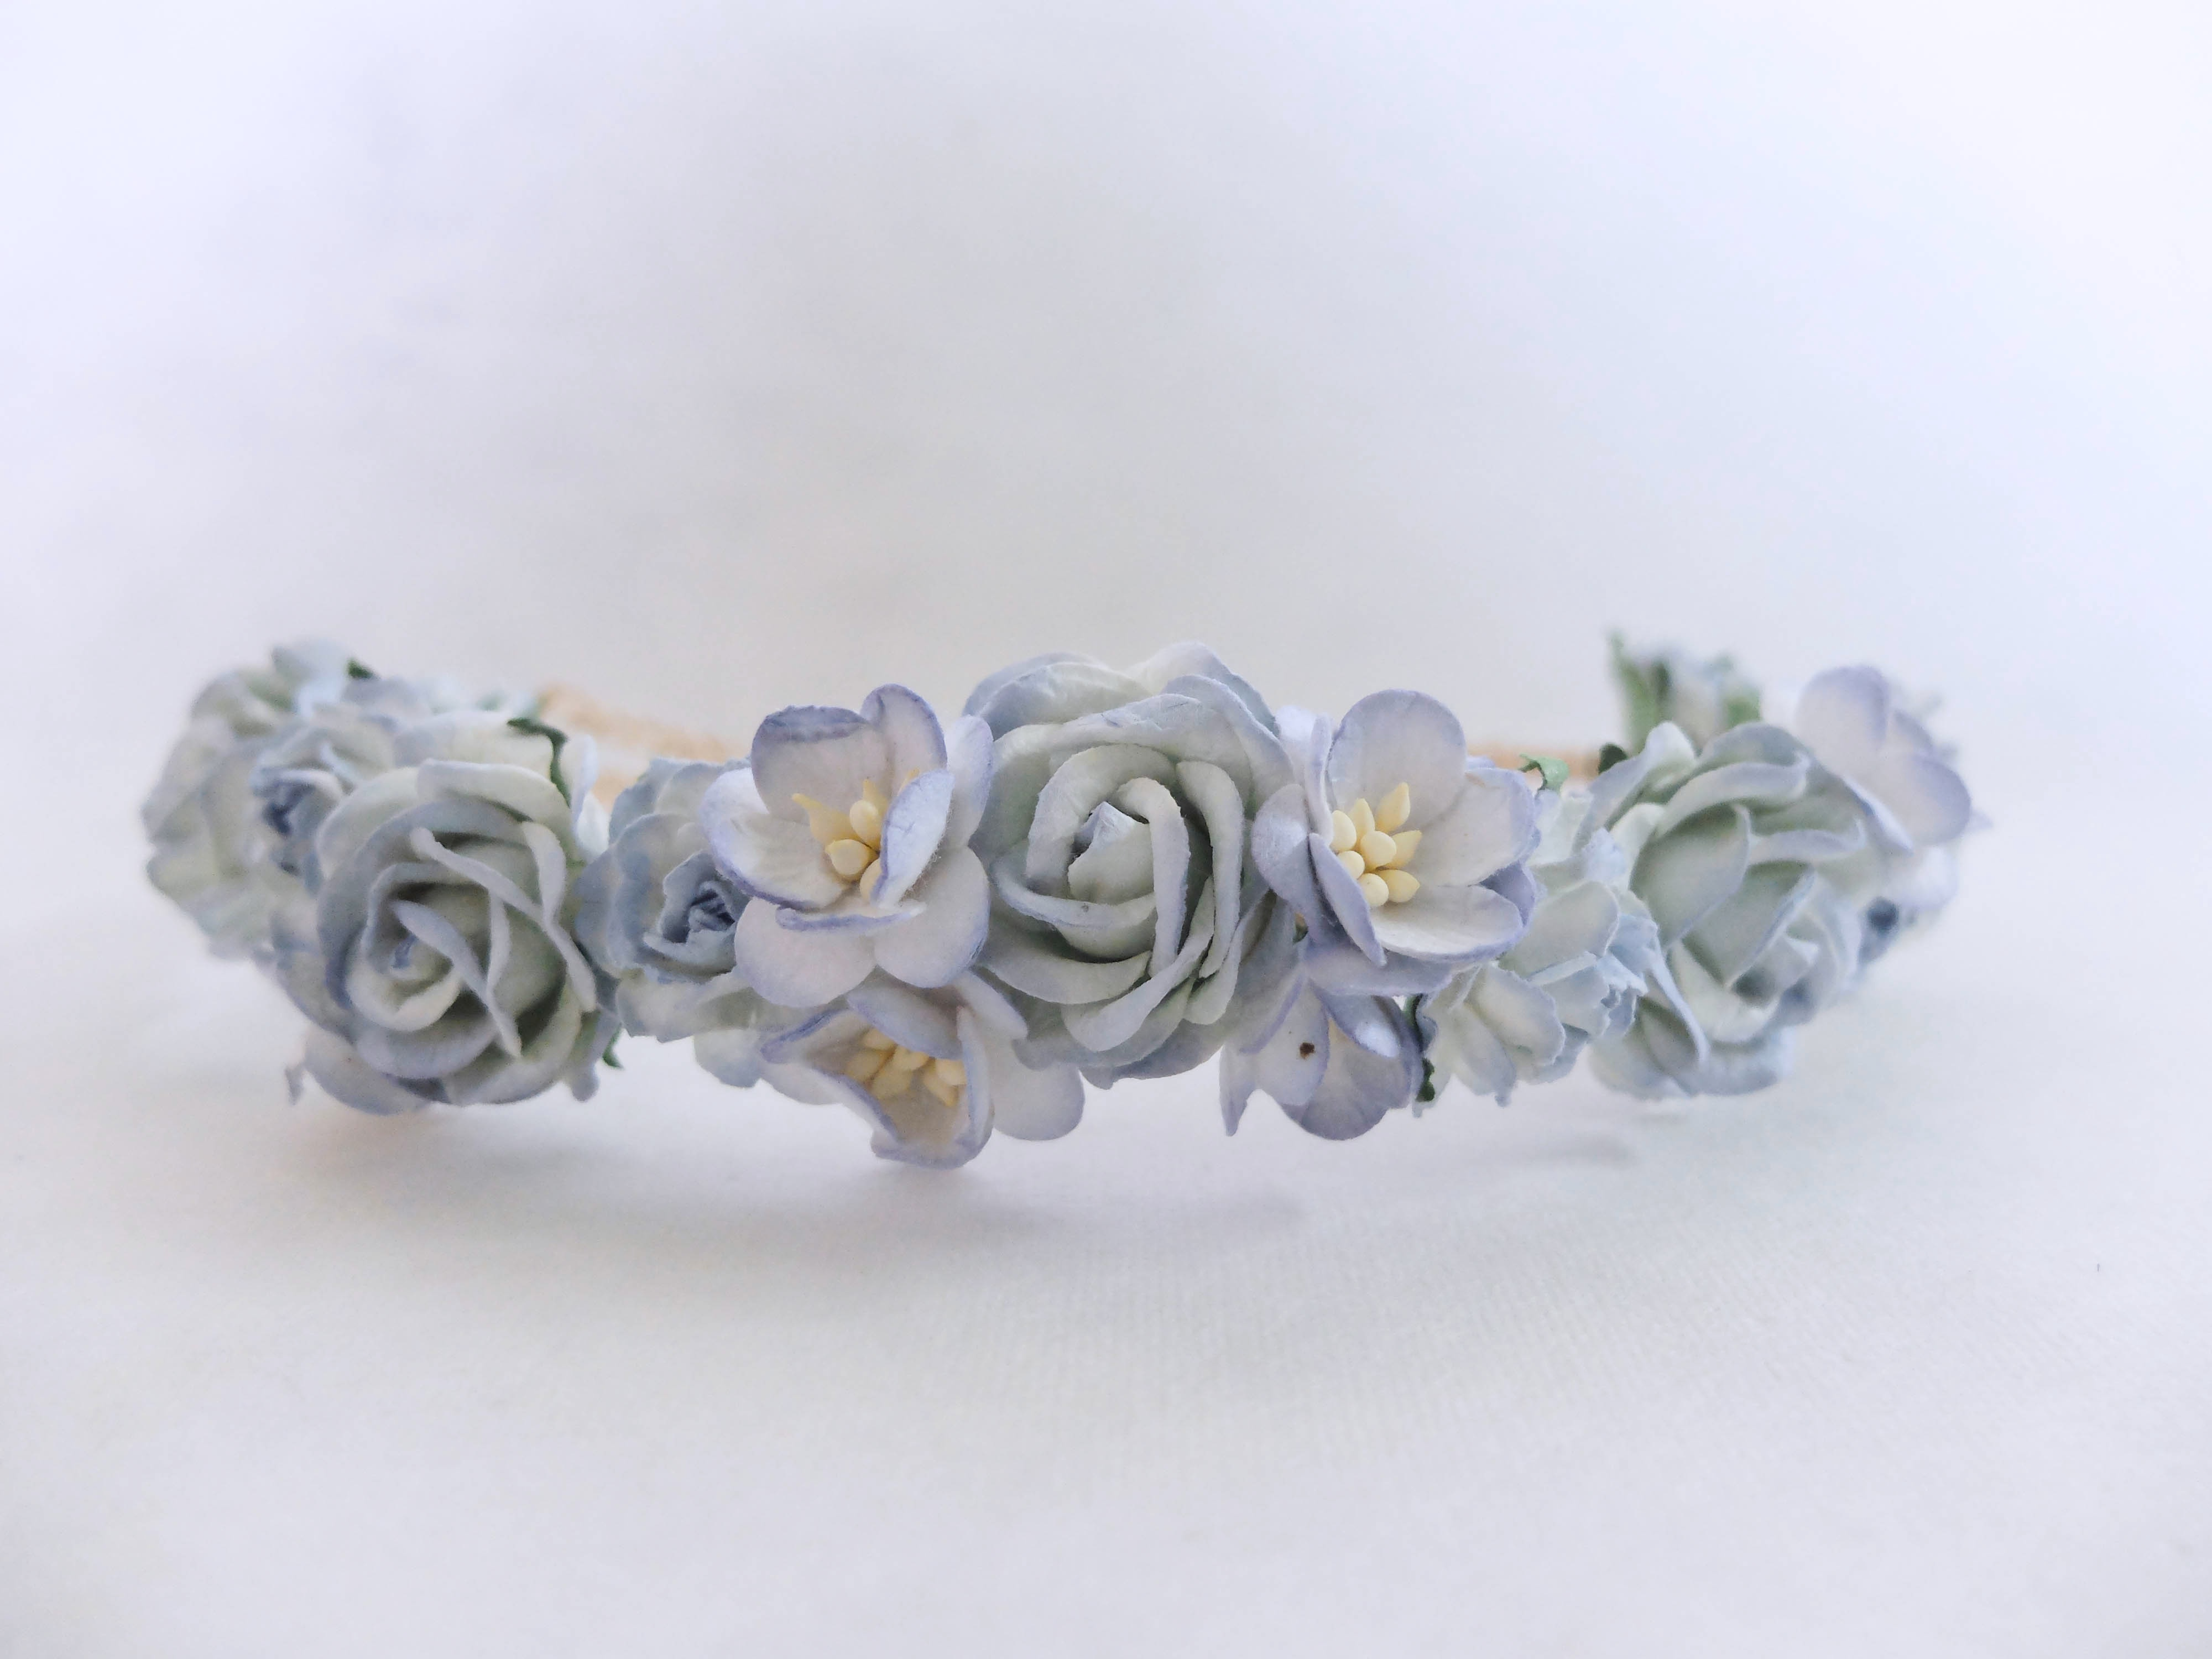 We are inspired to make flower crowns today dailypaperflowers shop light blue wedding flower crown izmirmasajfo